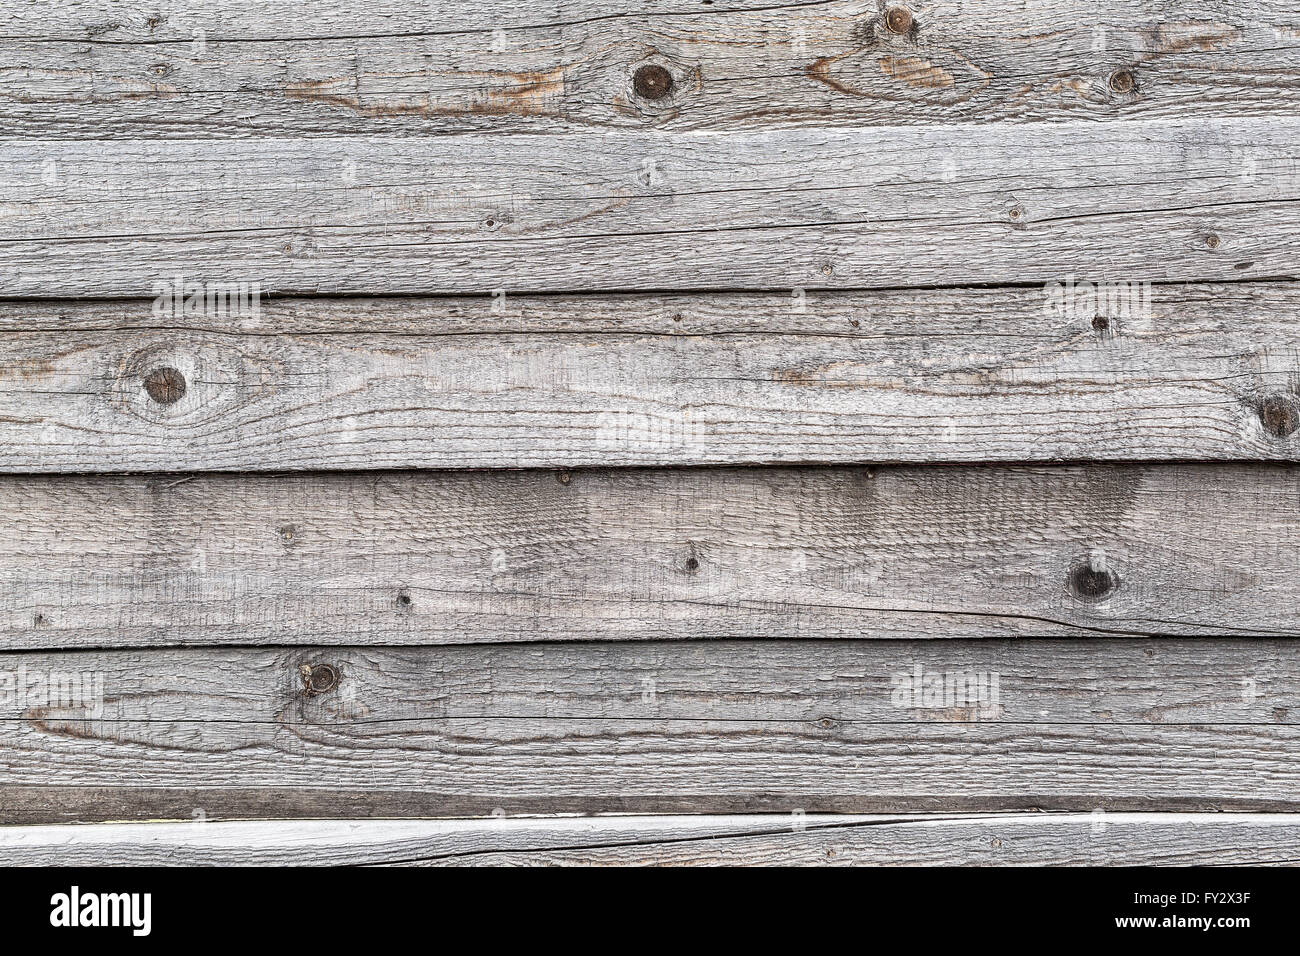 Old wooden planks. Picture of wooden structure. - Stock Image